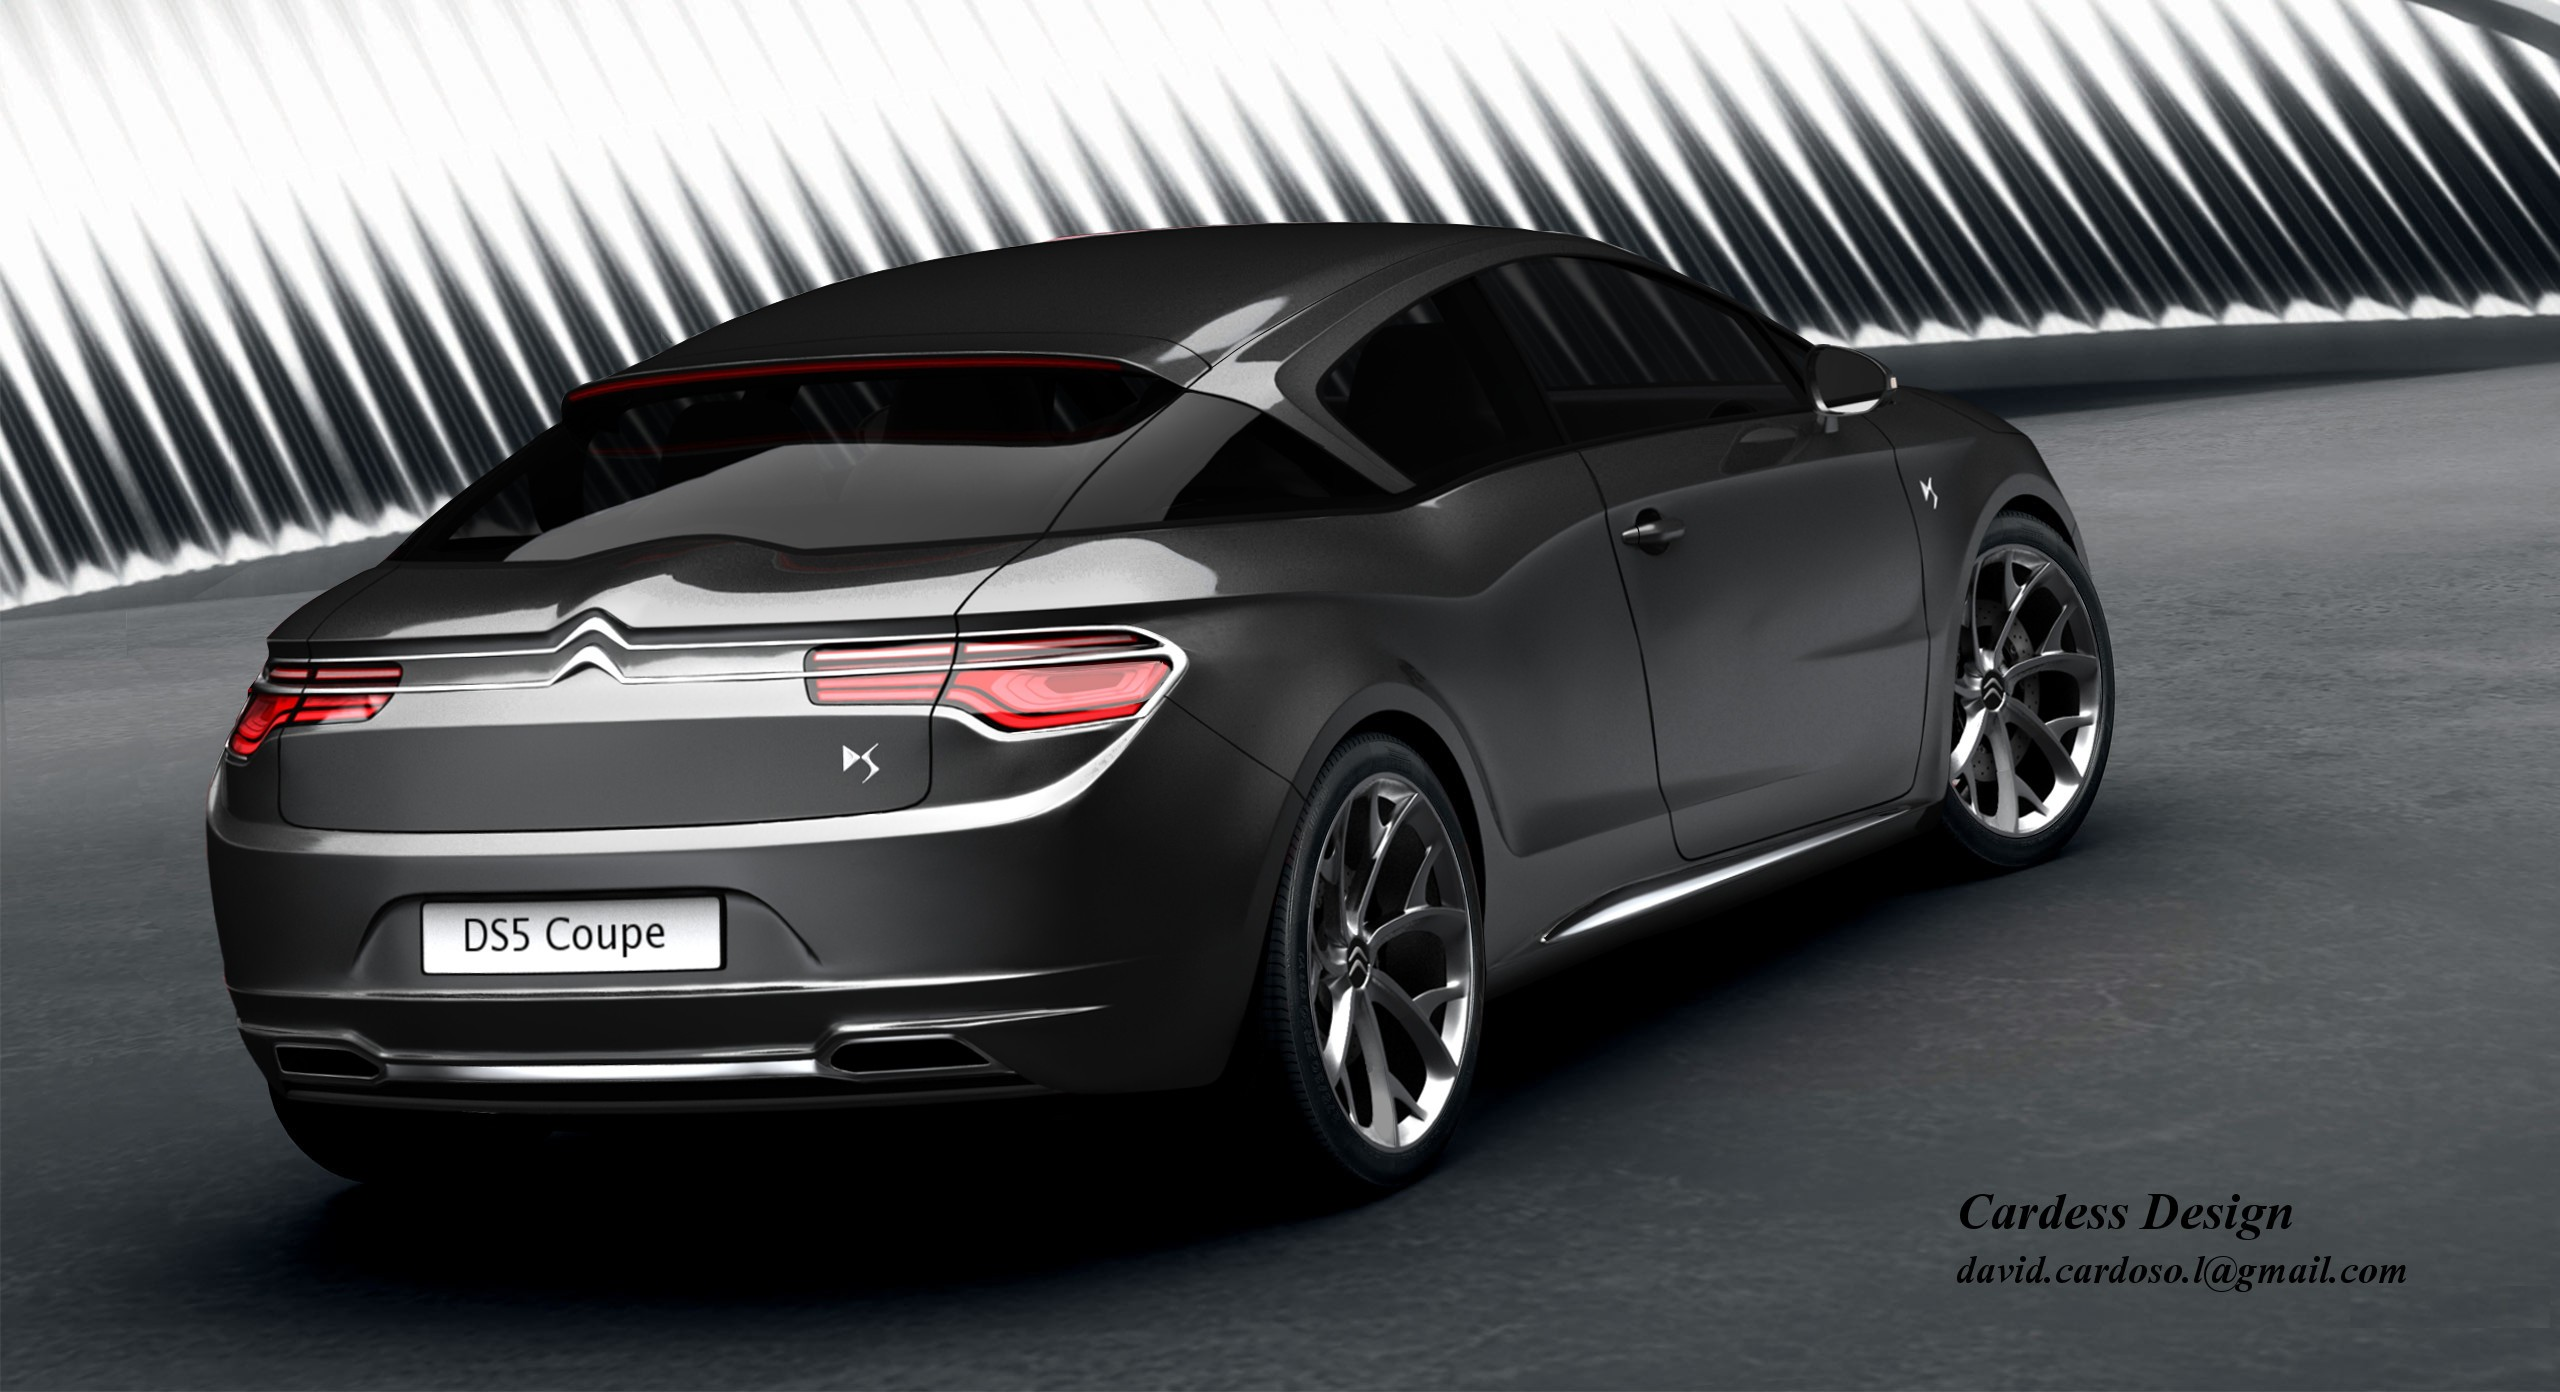 citroen ds5 coupe by cardess on deviantart. Black Bedroom Furniture Sets. Home Design Ideas